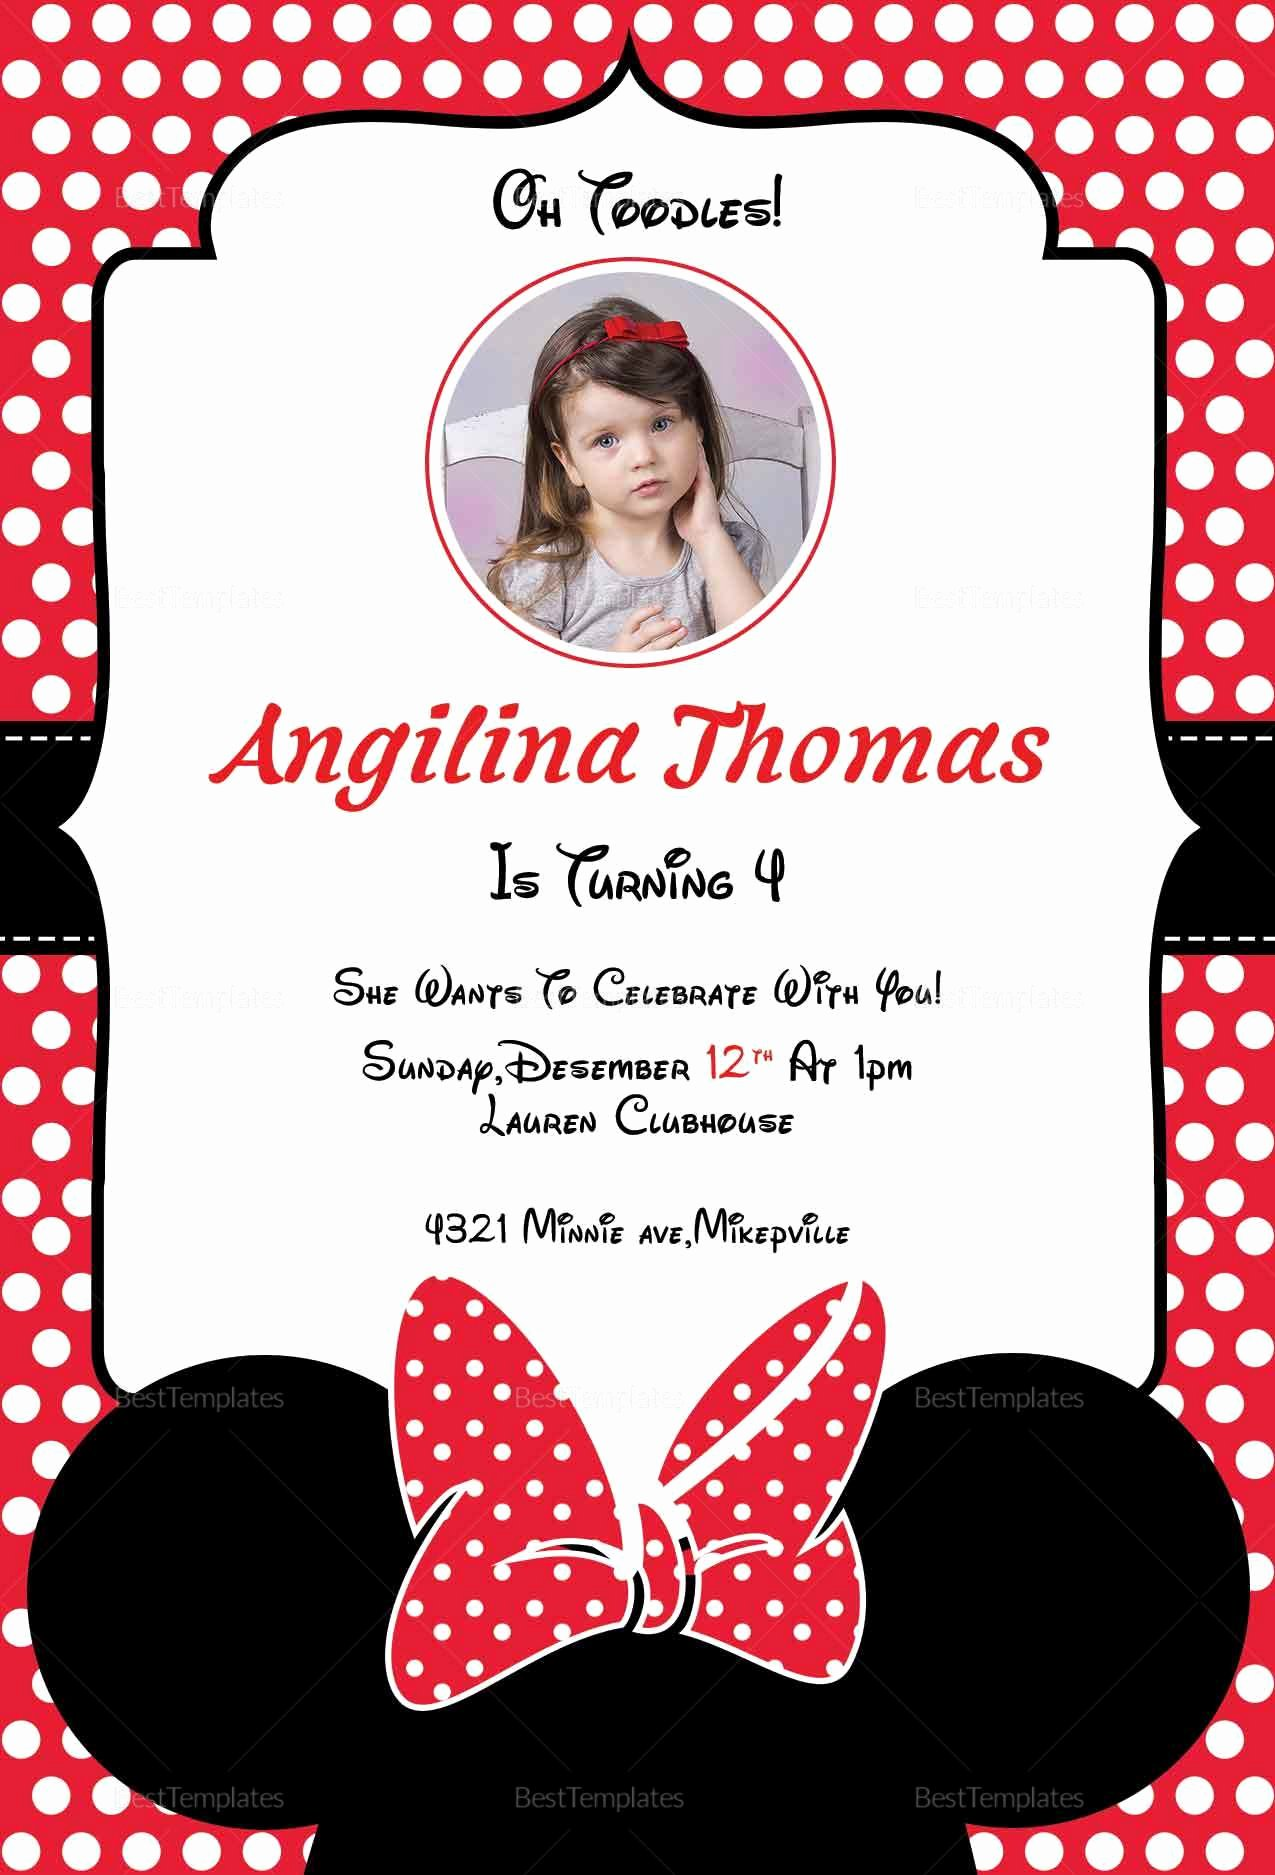 Minnie Mouse Invitation Card Elegant Birthday Minnie Mouse Invitation Card Design Template In Word Psd Publisher